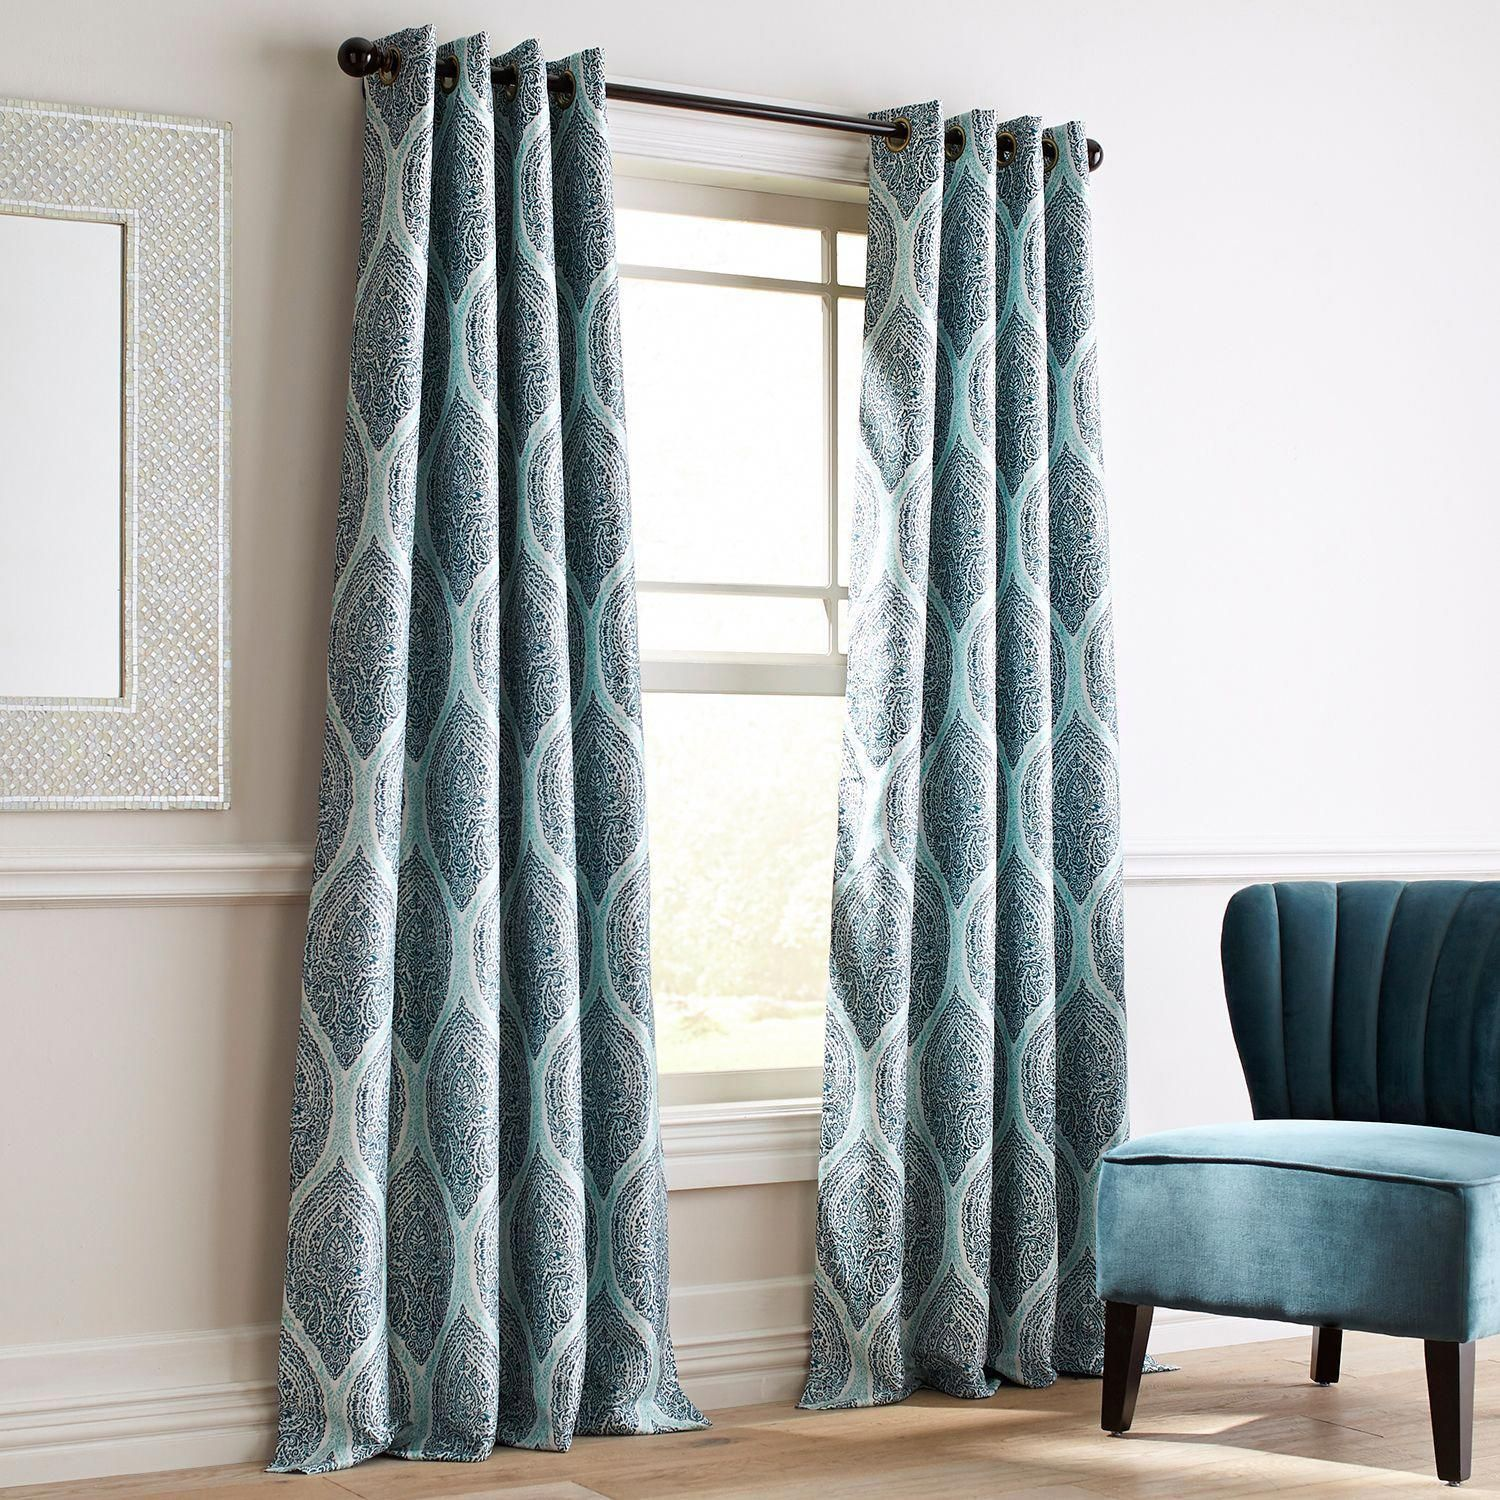 Teal Blackout Curtains Reese Teal Grommet Blackout Curtain Pier 1 Imports